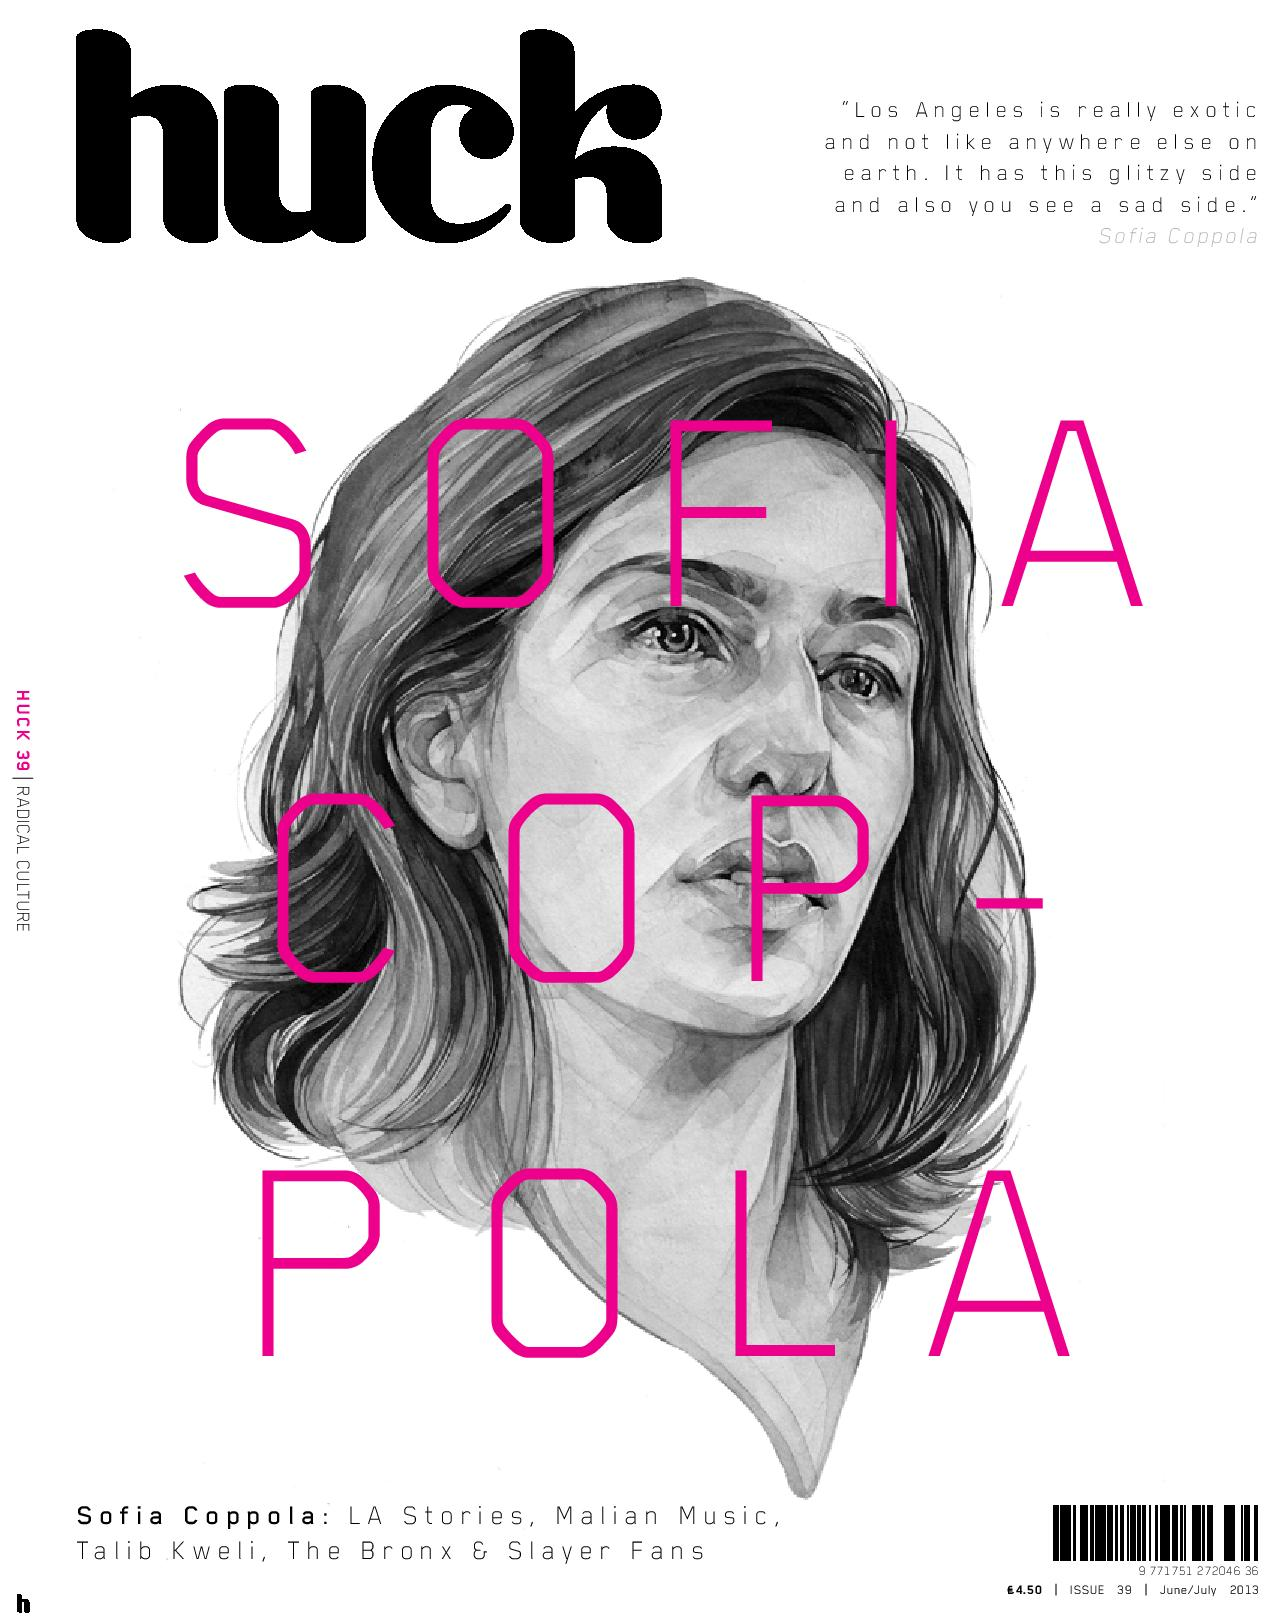 Back Issue - 39 - Sofia Coppola